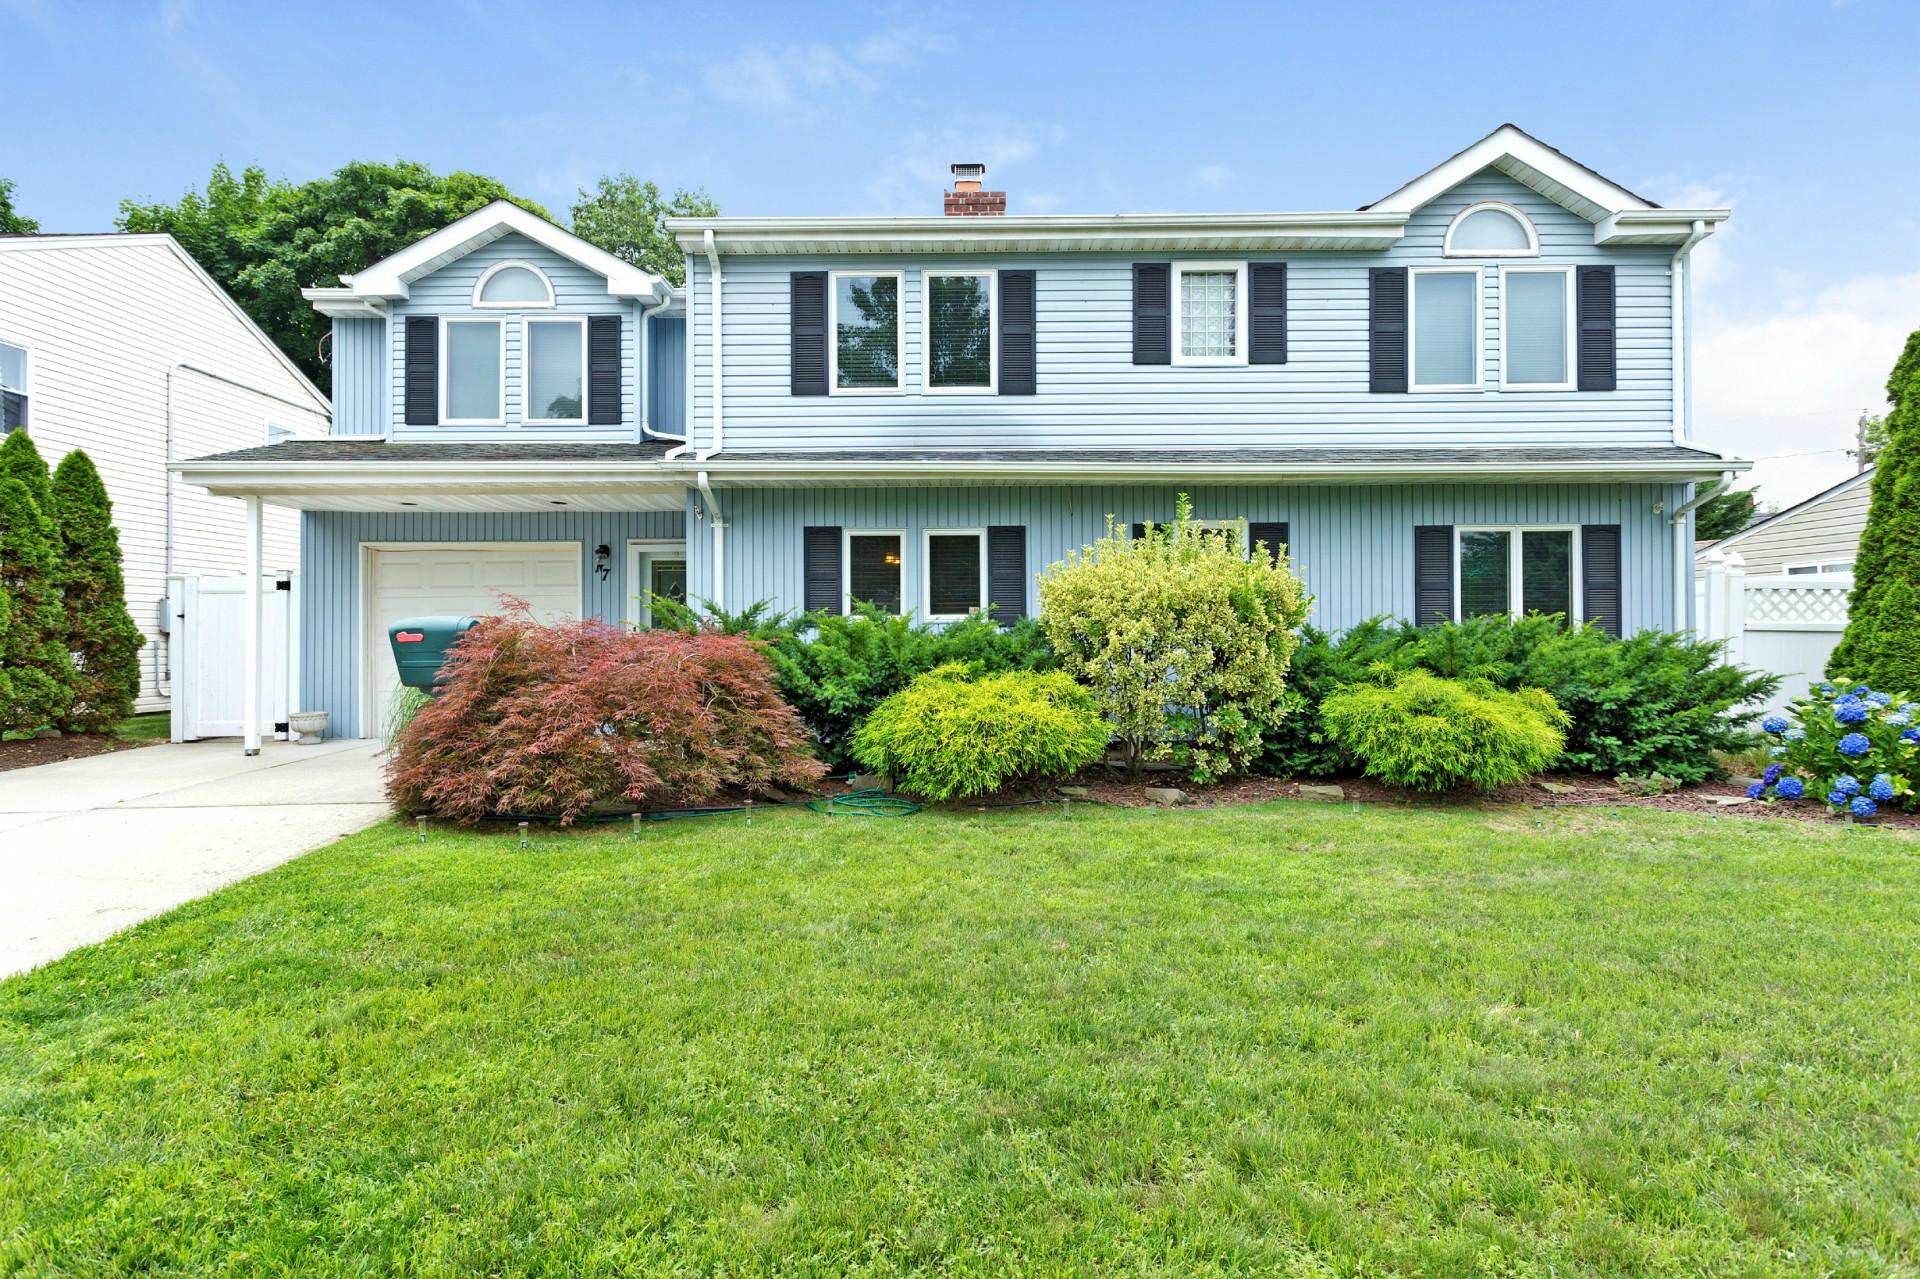 Single Family for Sale at 17 Bobolink Ln Levittown, New York 11756 United States